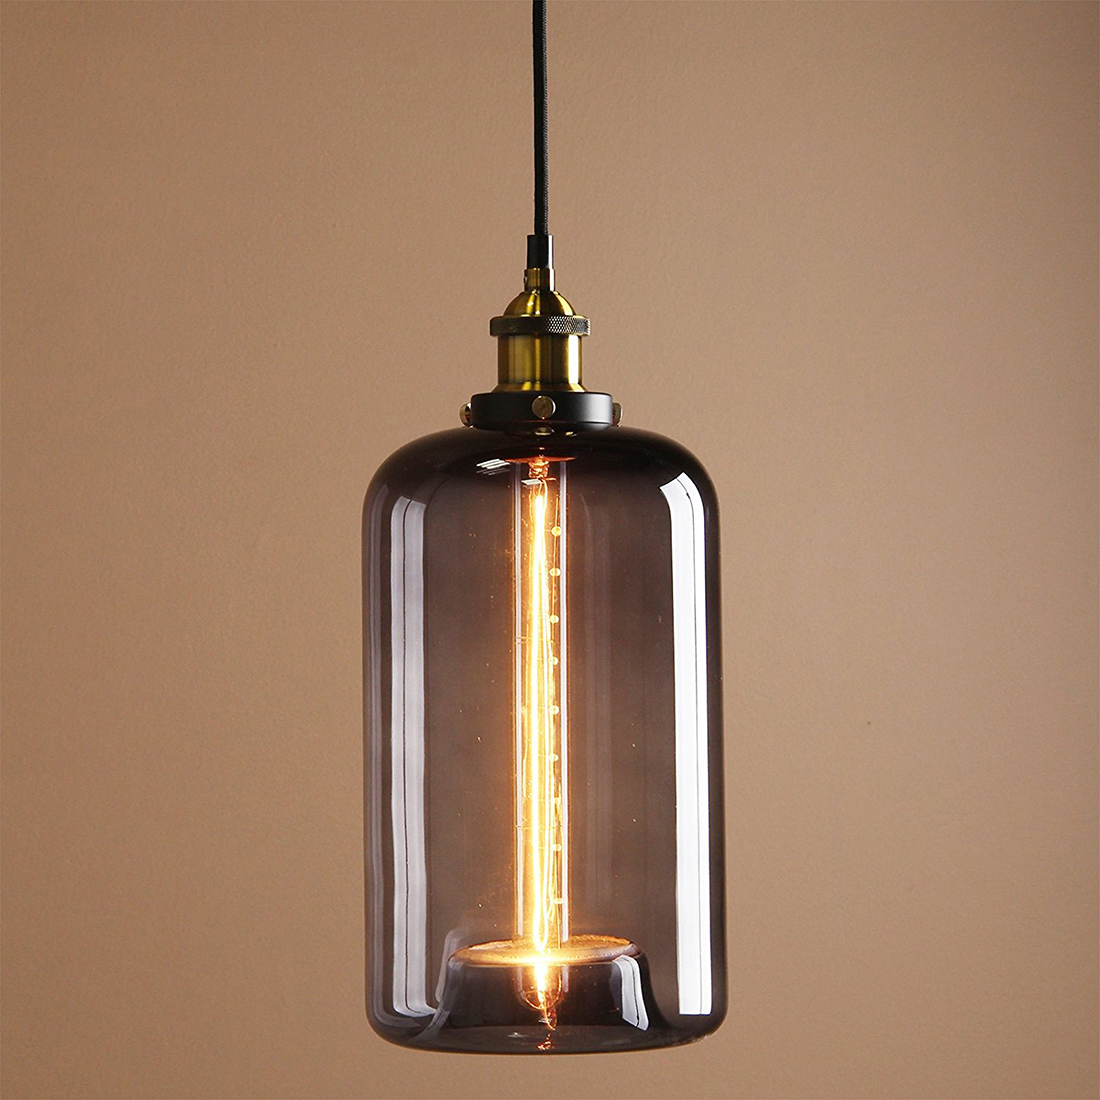 Vintage Industrial Metal Finish Glass Shade Loft Pendant Lamp Retro Ceiling Vintage Light fitting 18cm Cannon glass shade